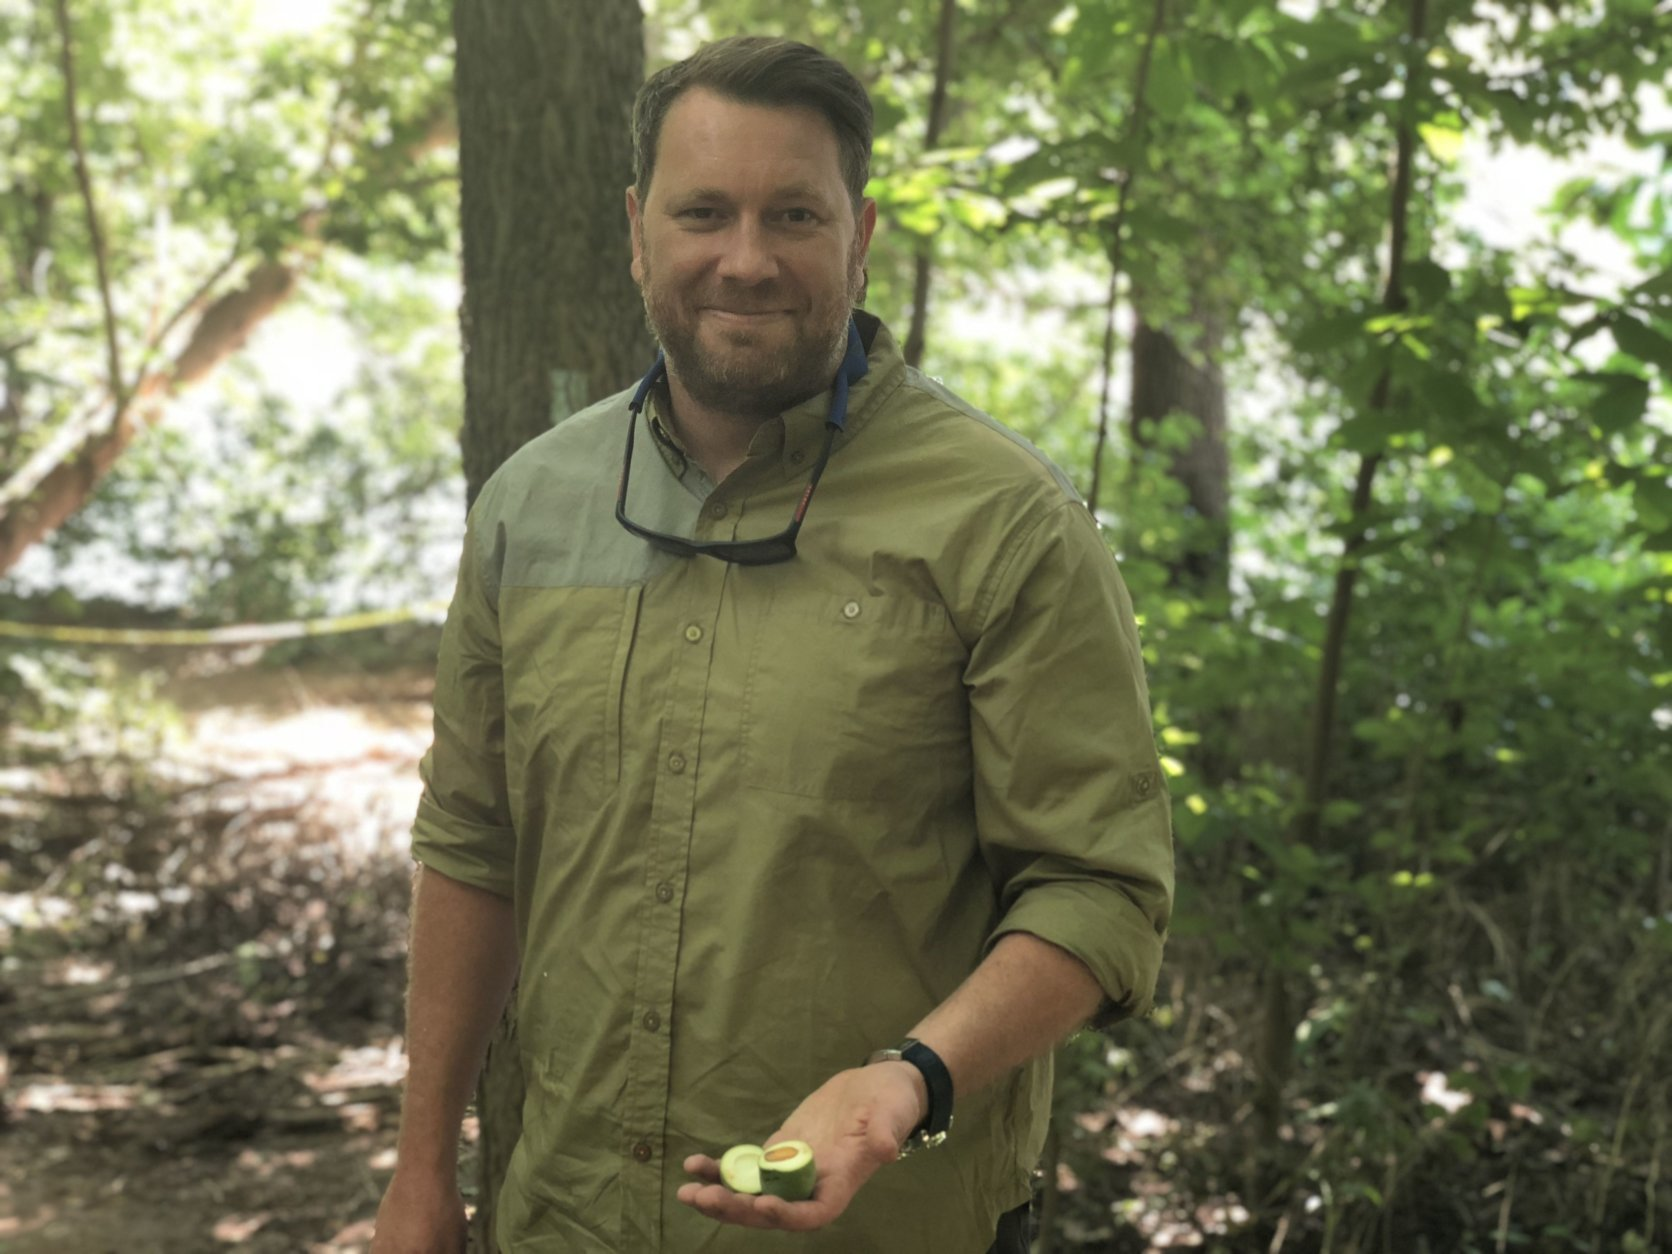 Bourbon Steak Executive Chef Drew Adams is an avid forager, and uses the foods he finds in the wild to shape his restaurant's menu. (WTOP/Rachel Nania)